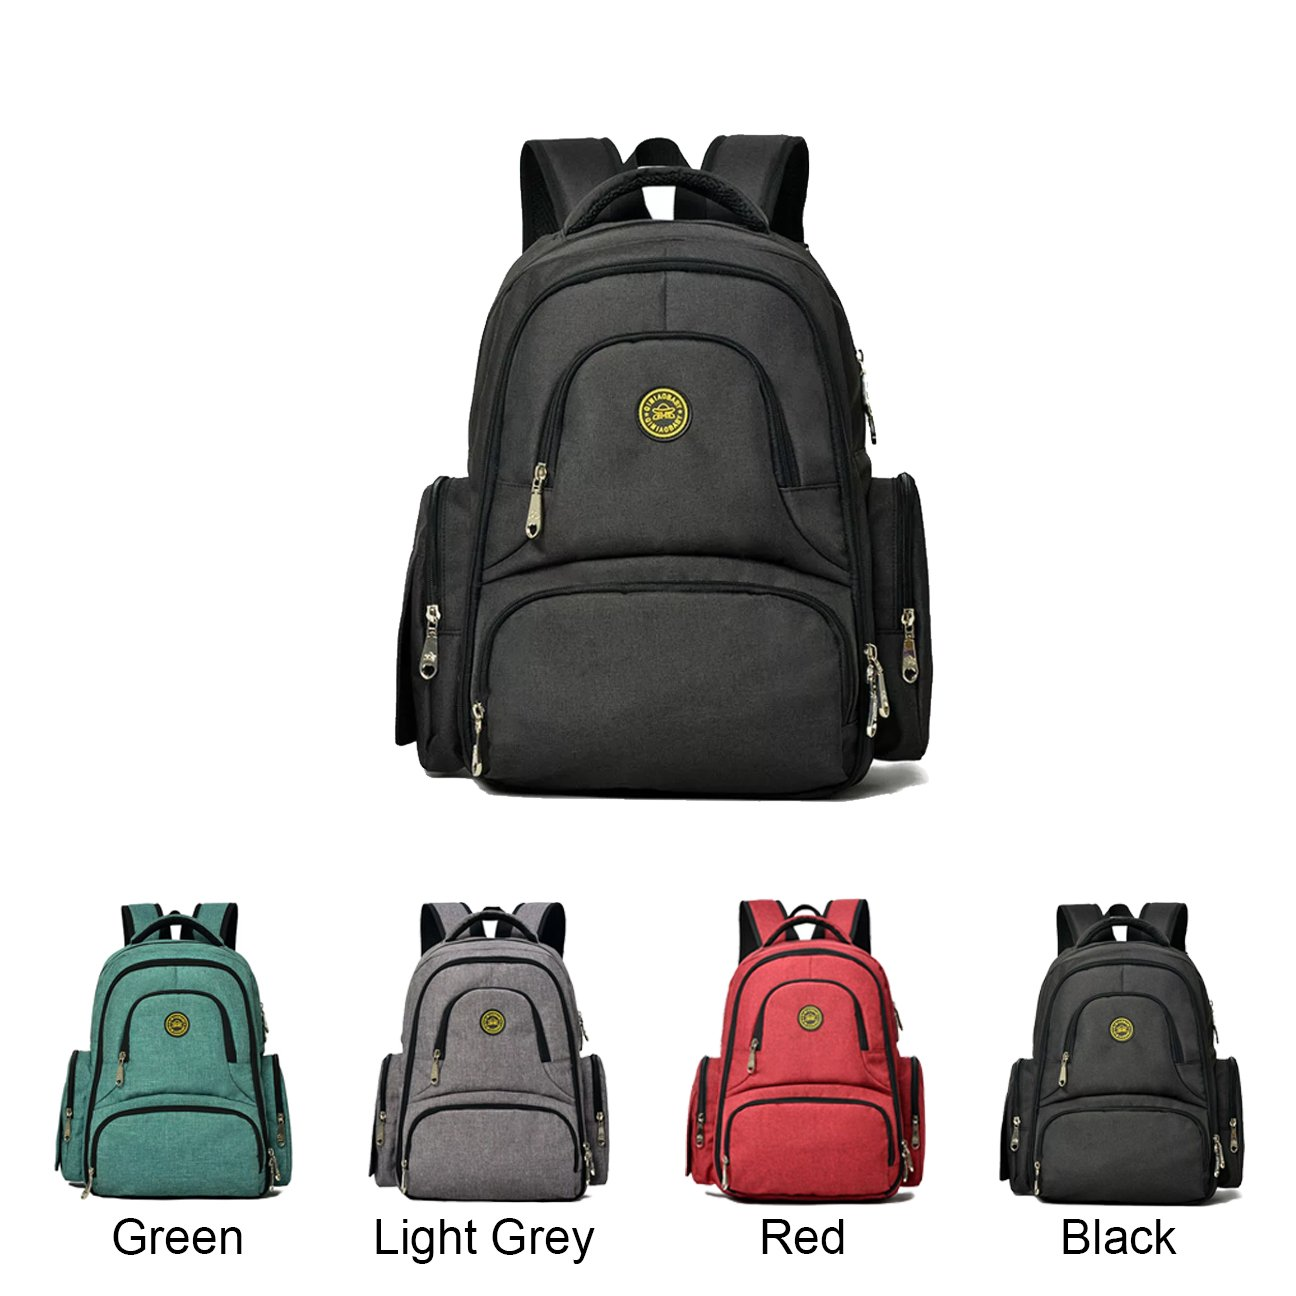 high-quality Queenie - Baby Waterproof Polyester Cotton Diaper Backpack Multi- function Travel Backpack Nappy Bag Travel Organizer For Men & Women (QM1490-1 Black)